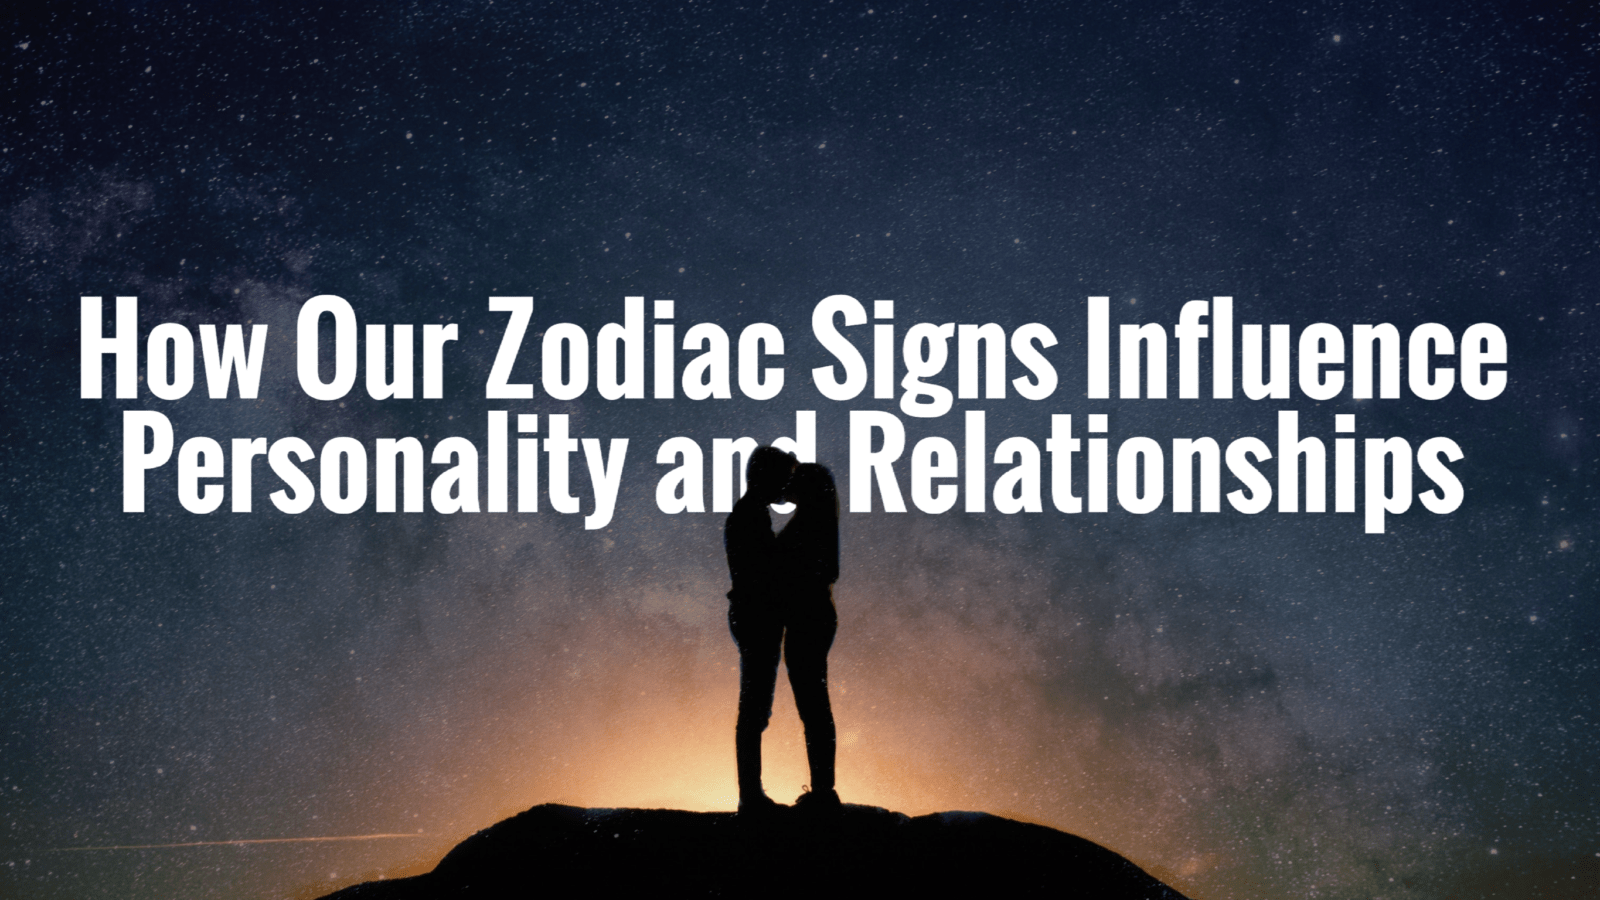 zodiac signs influence personality